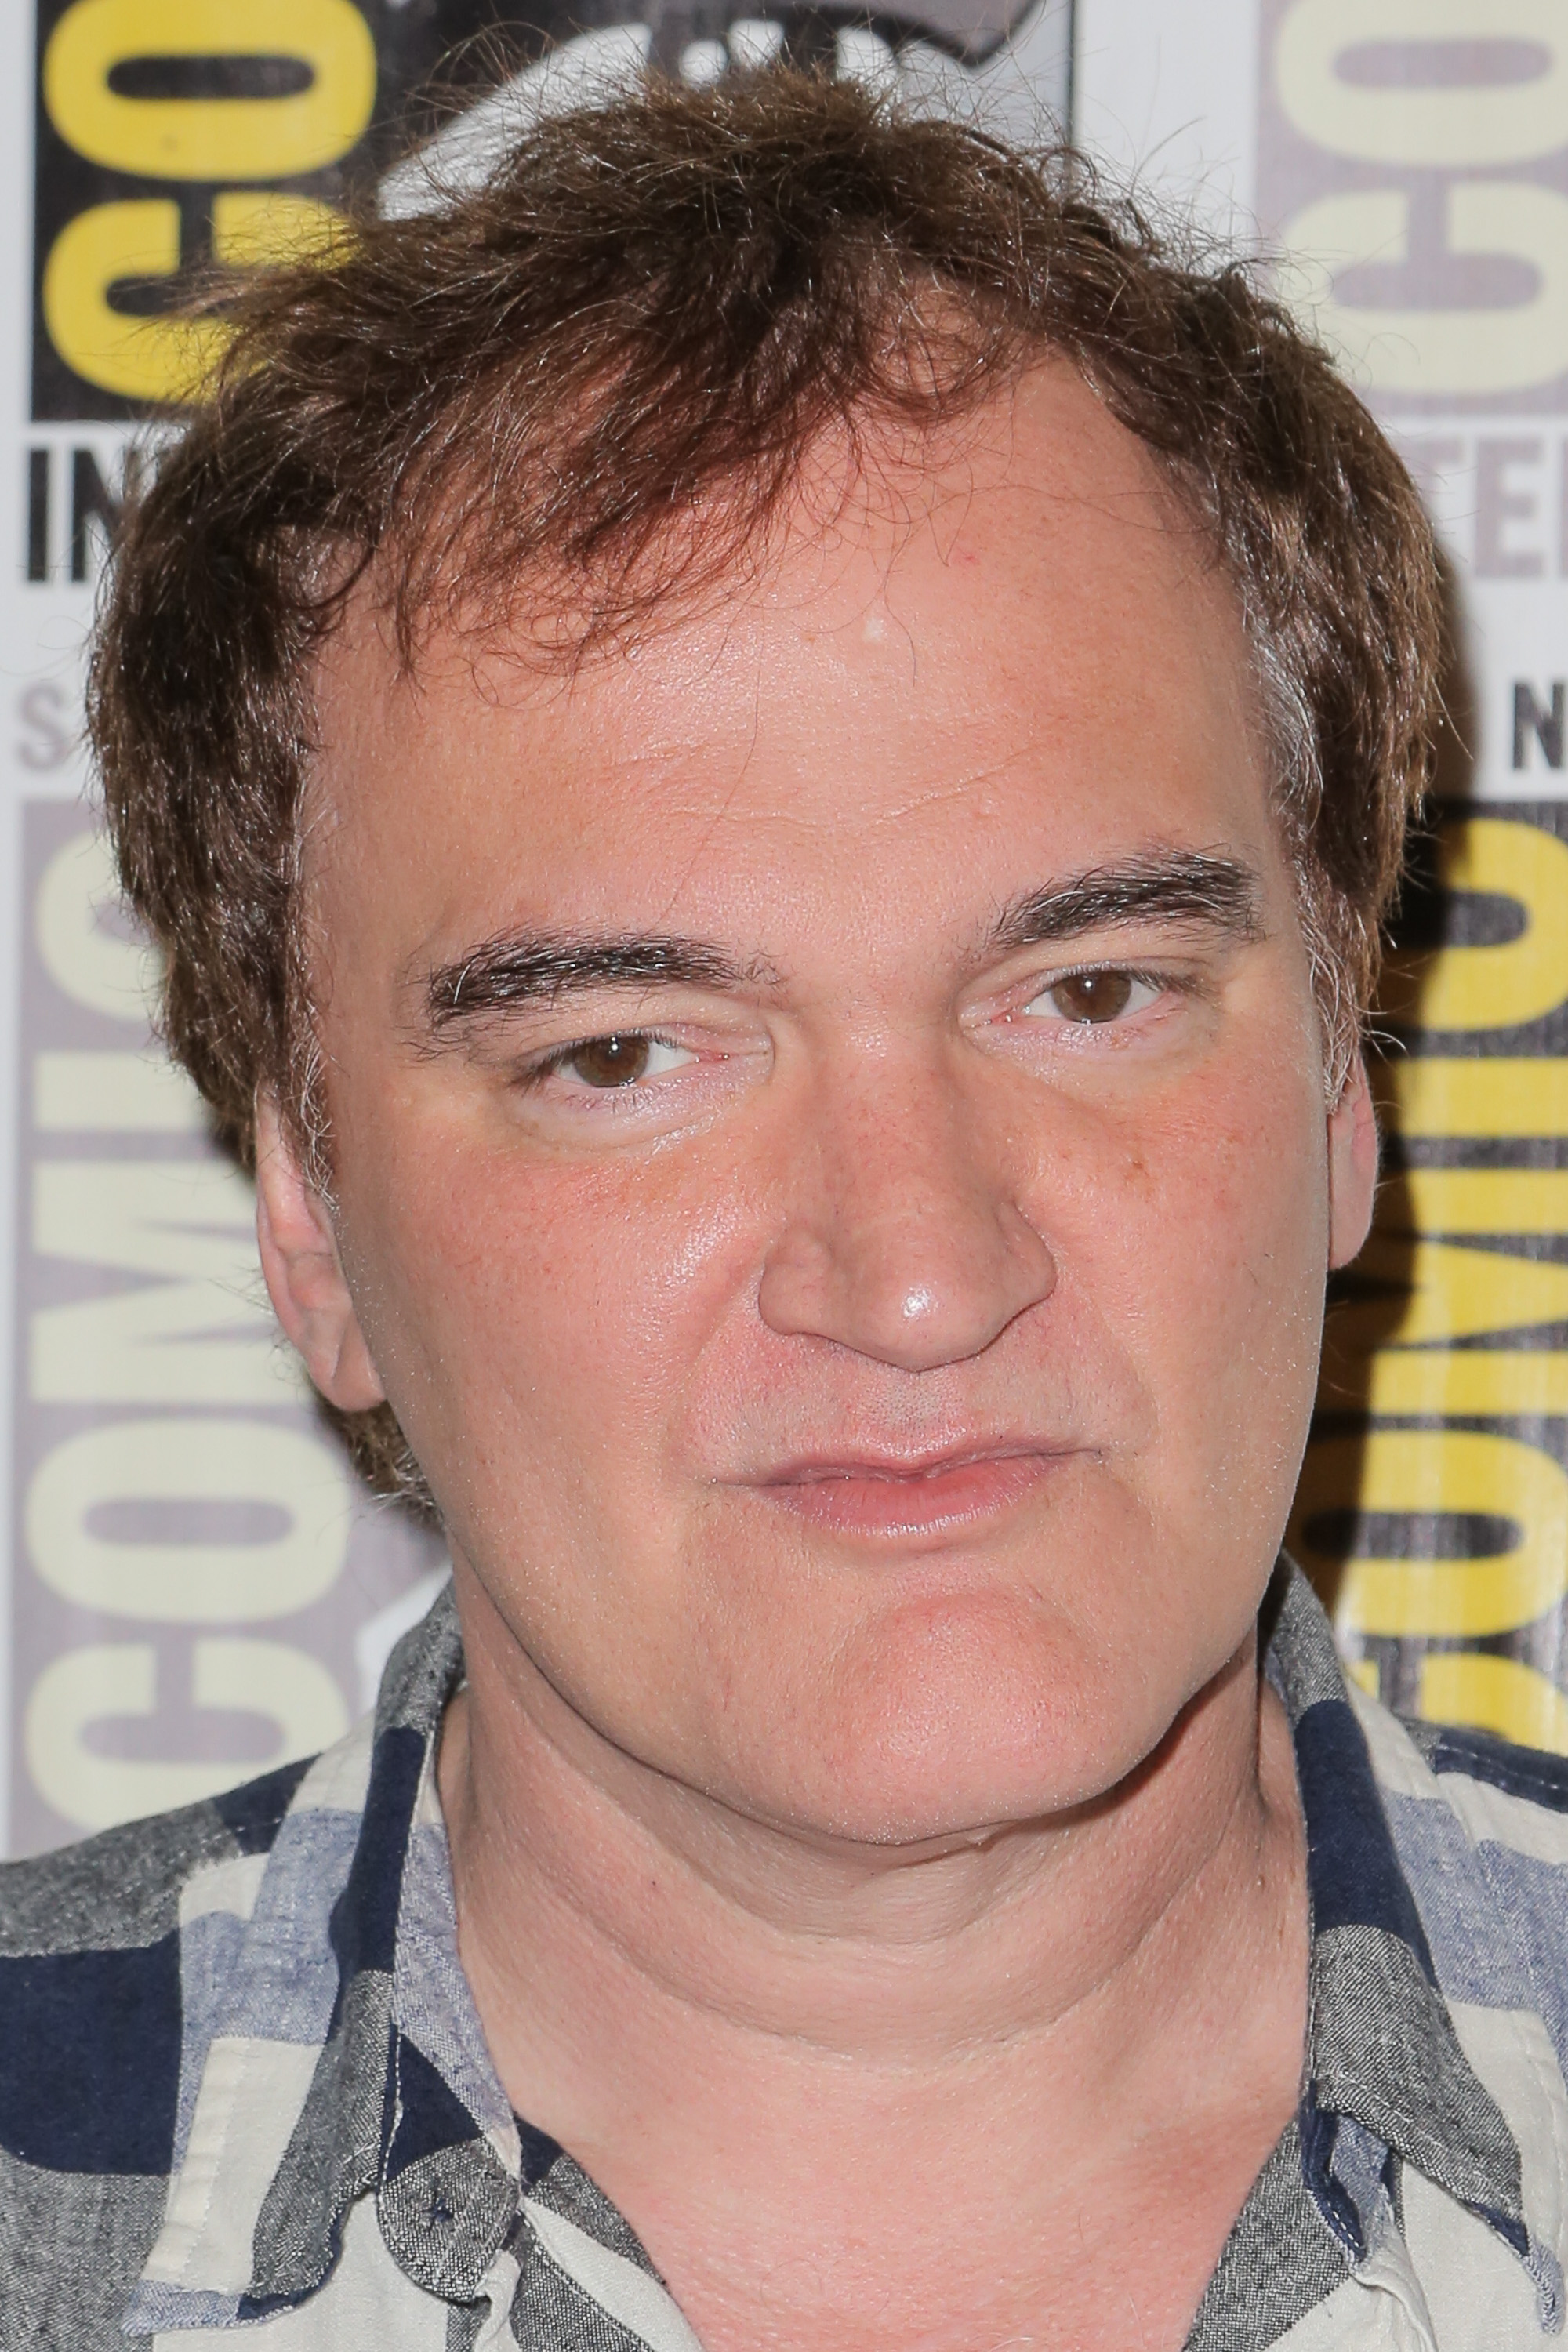 Quentin Tarantino at Comic Con International 2015 in San Diego on July 11, 2015.